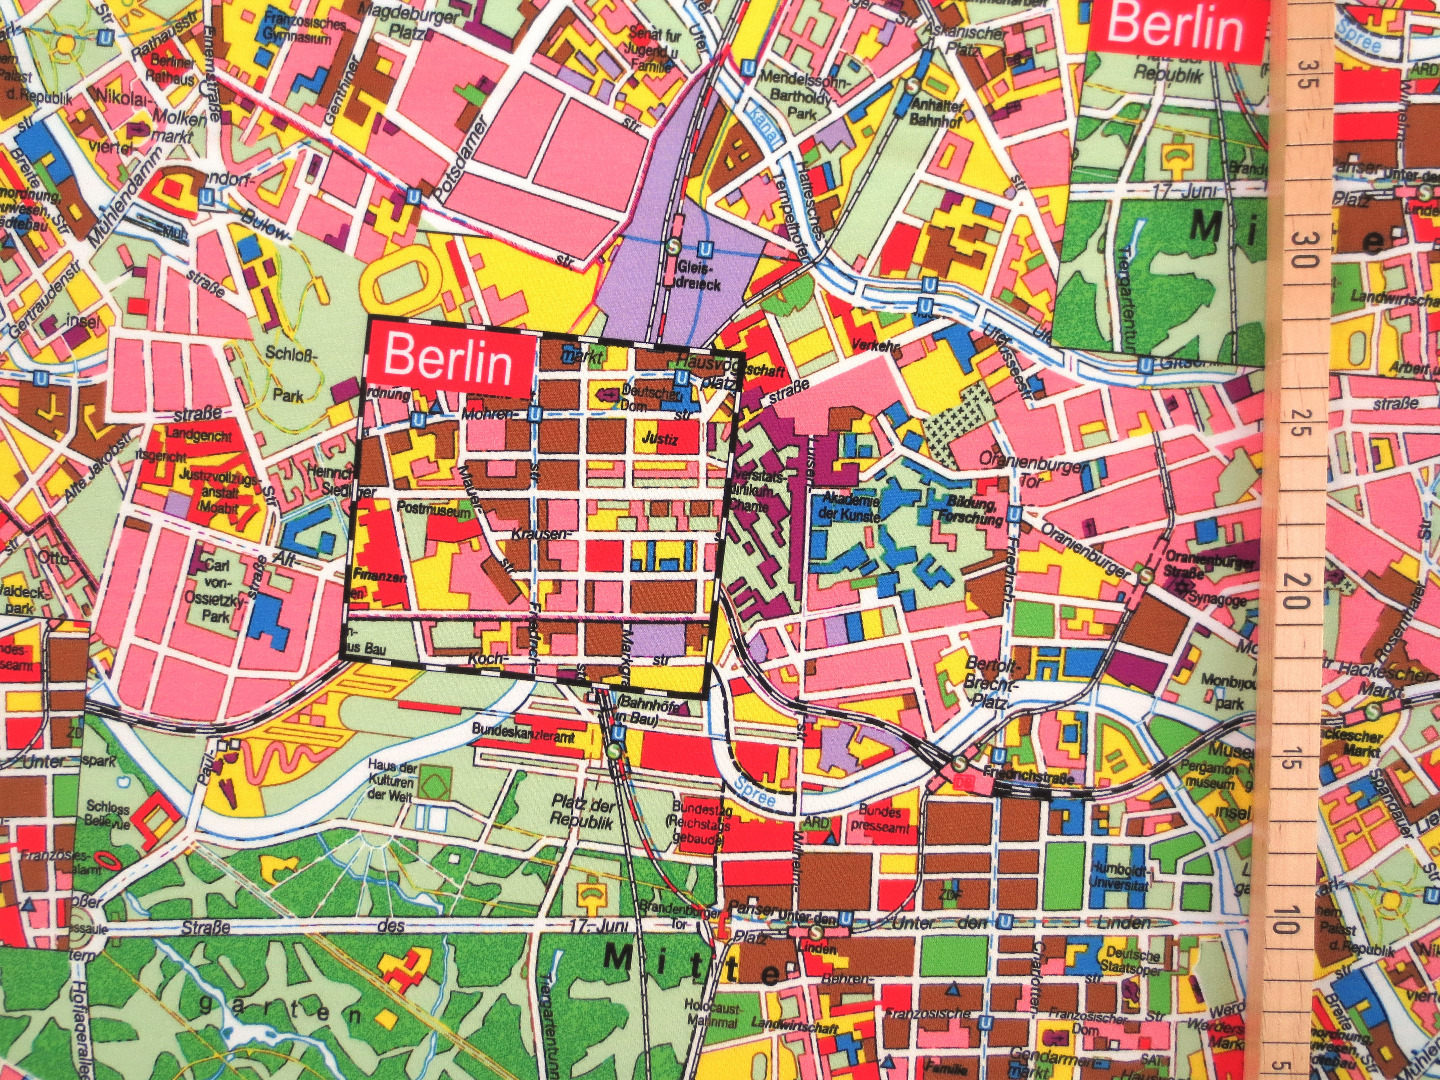 French Terry Berlin - Berlin Stadtplan